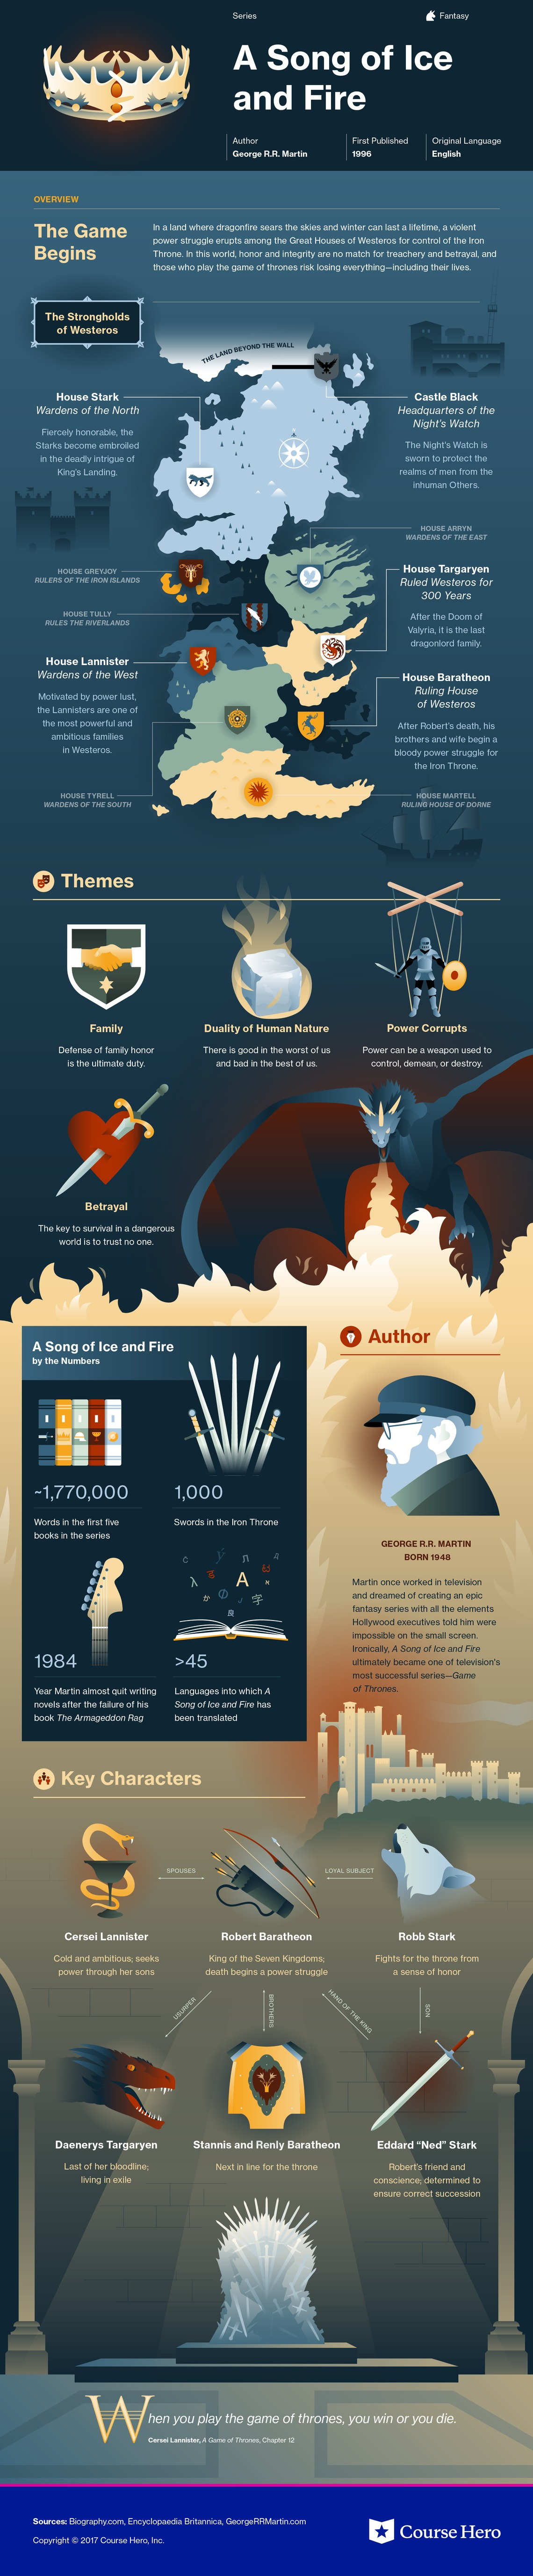 A Song of Ice and Fire (Series) Infographic | Course Hero